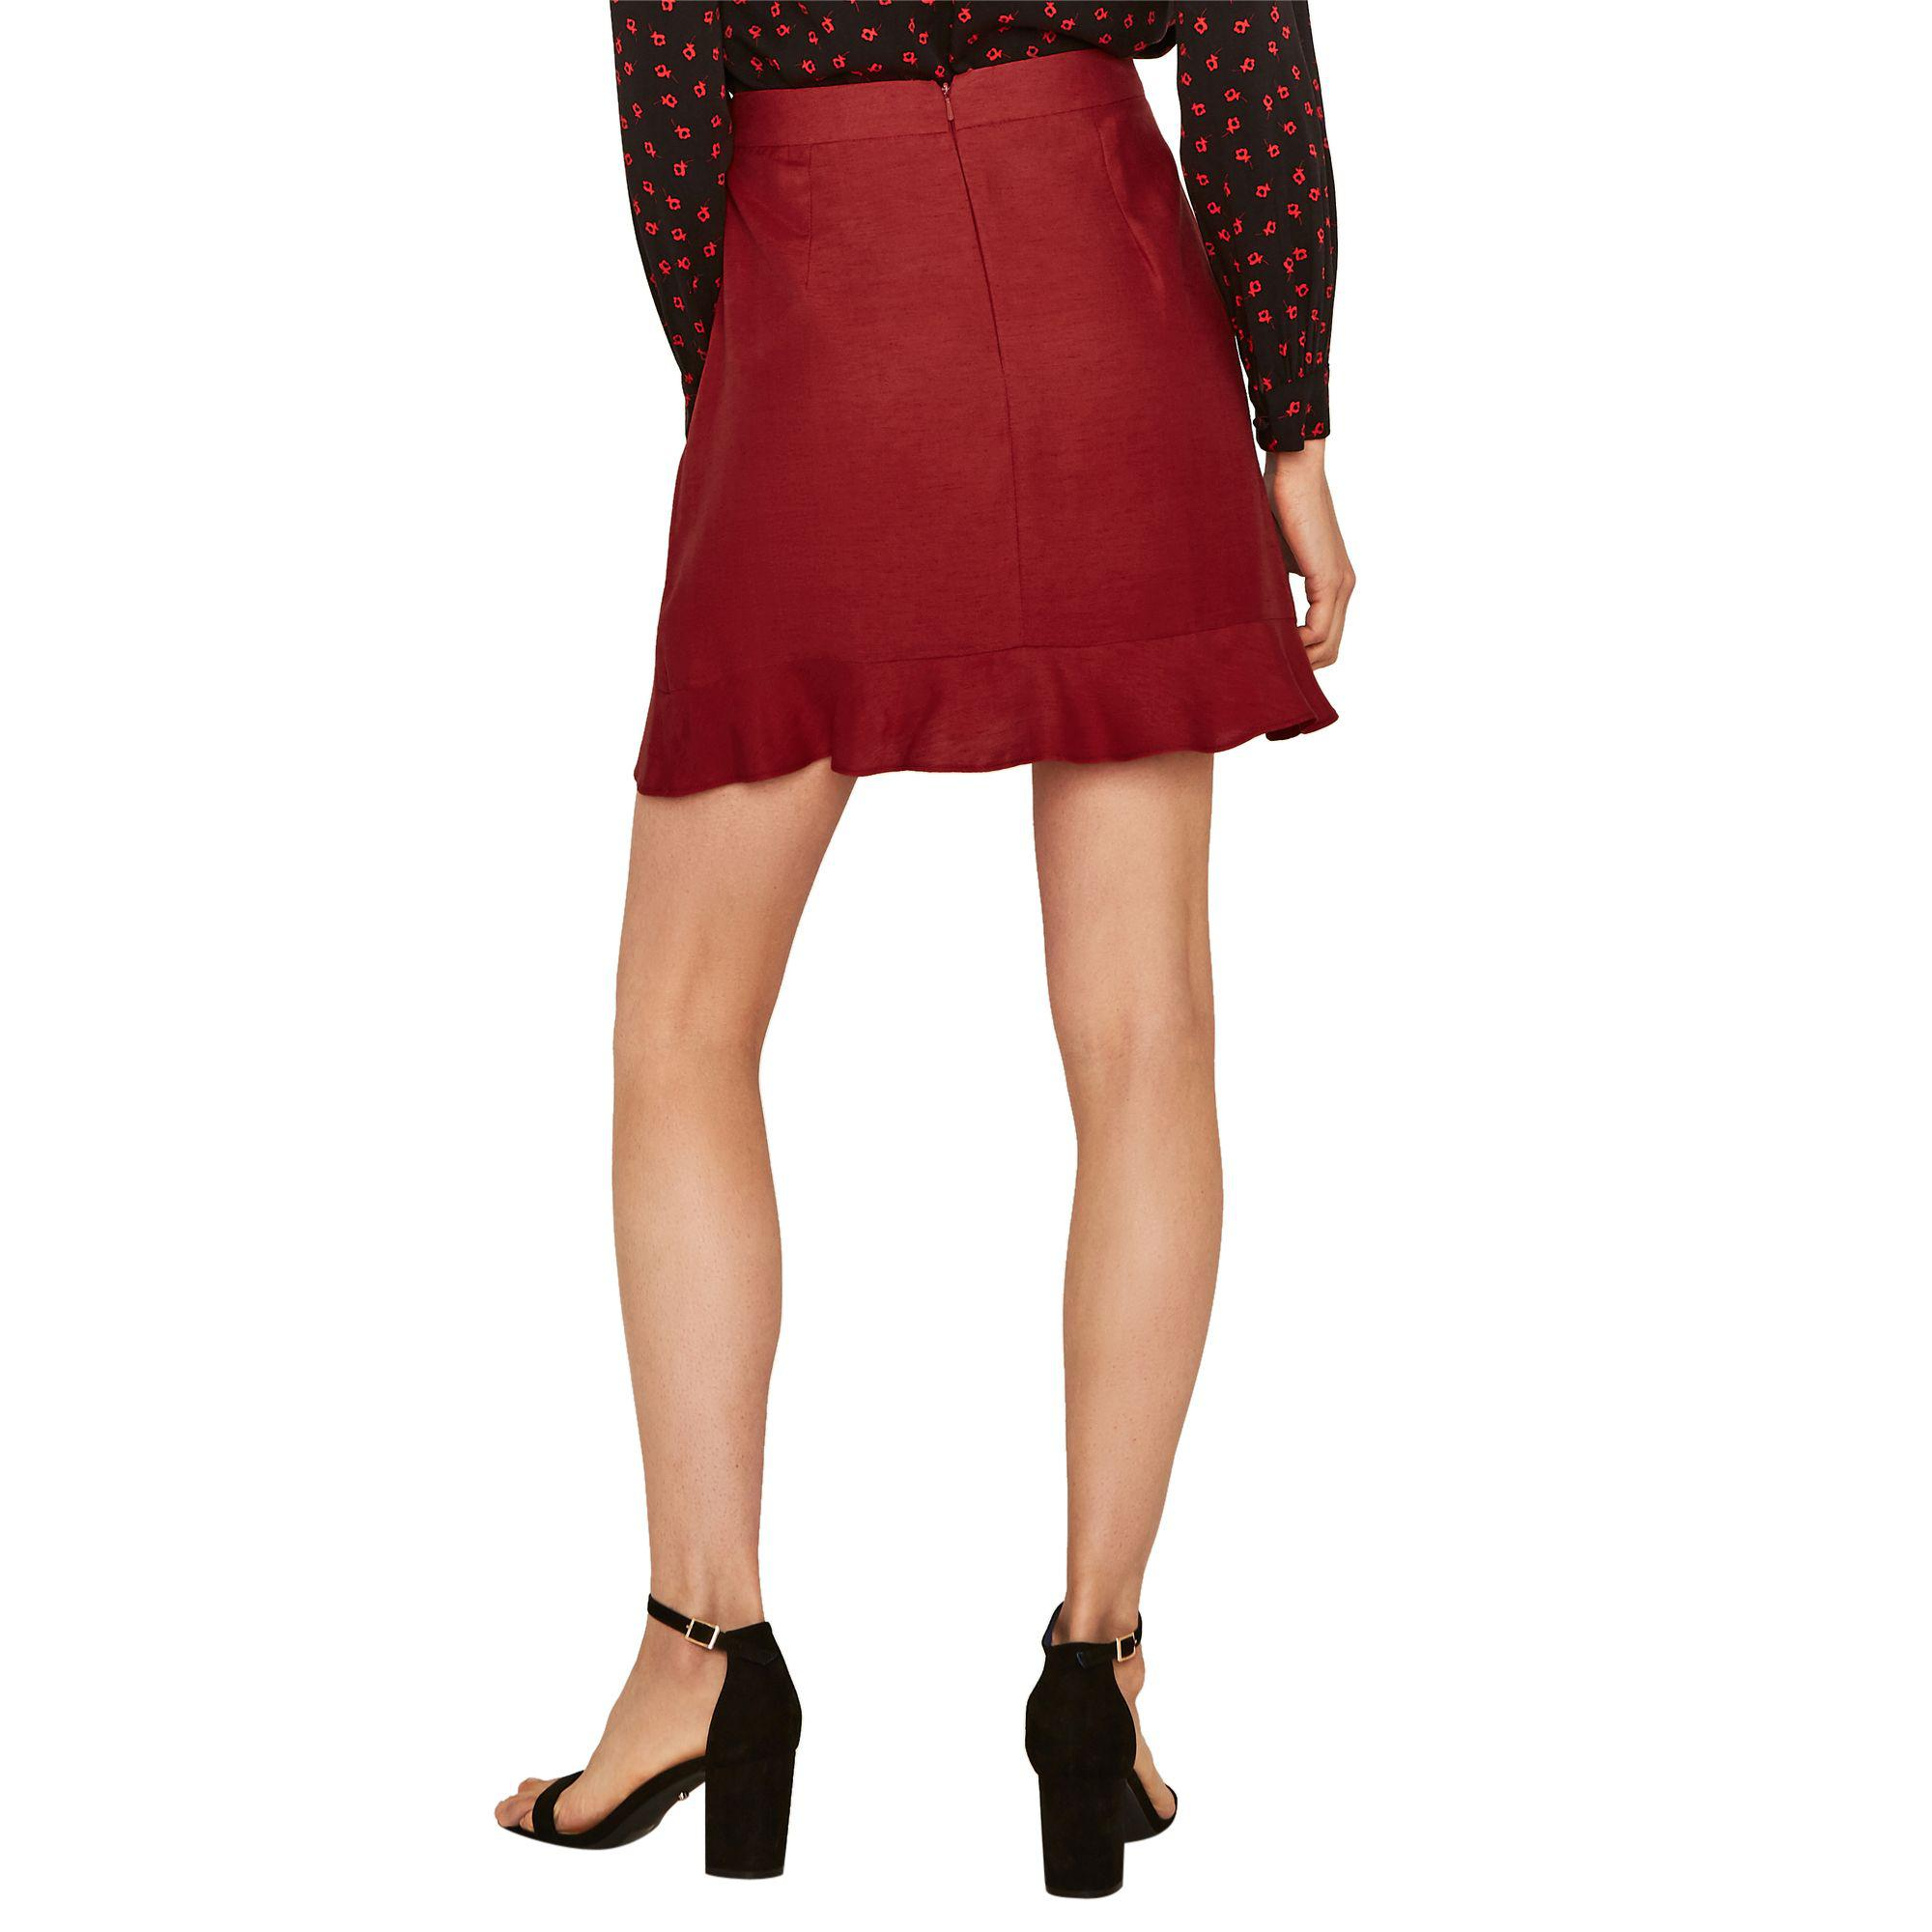 ebfeab77be Oasis Mid Red Linen Ruffle Wrap Mini Skirt in Red - Save 44% - Lyst